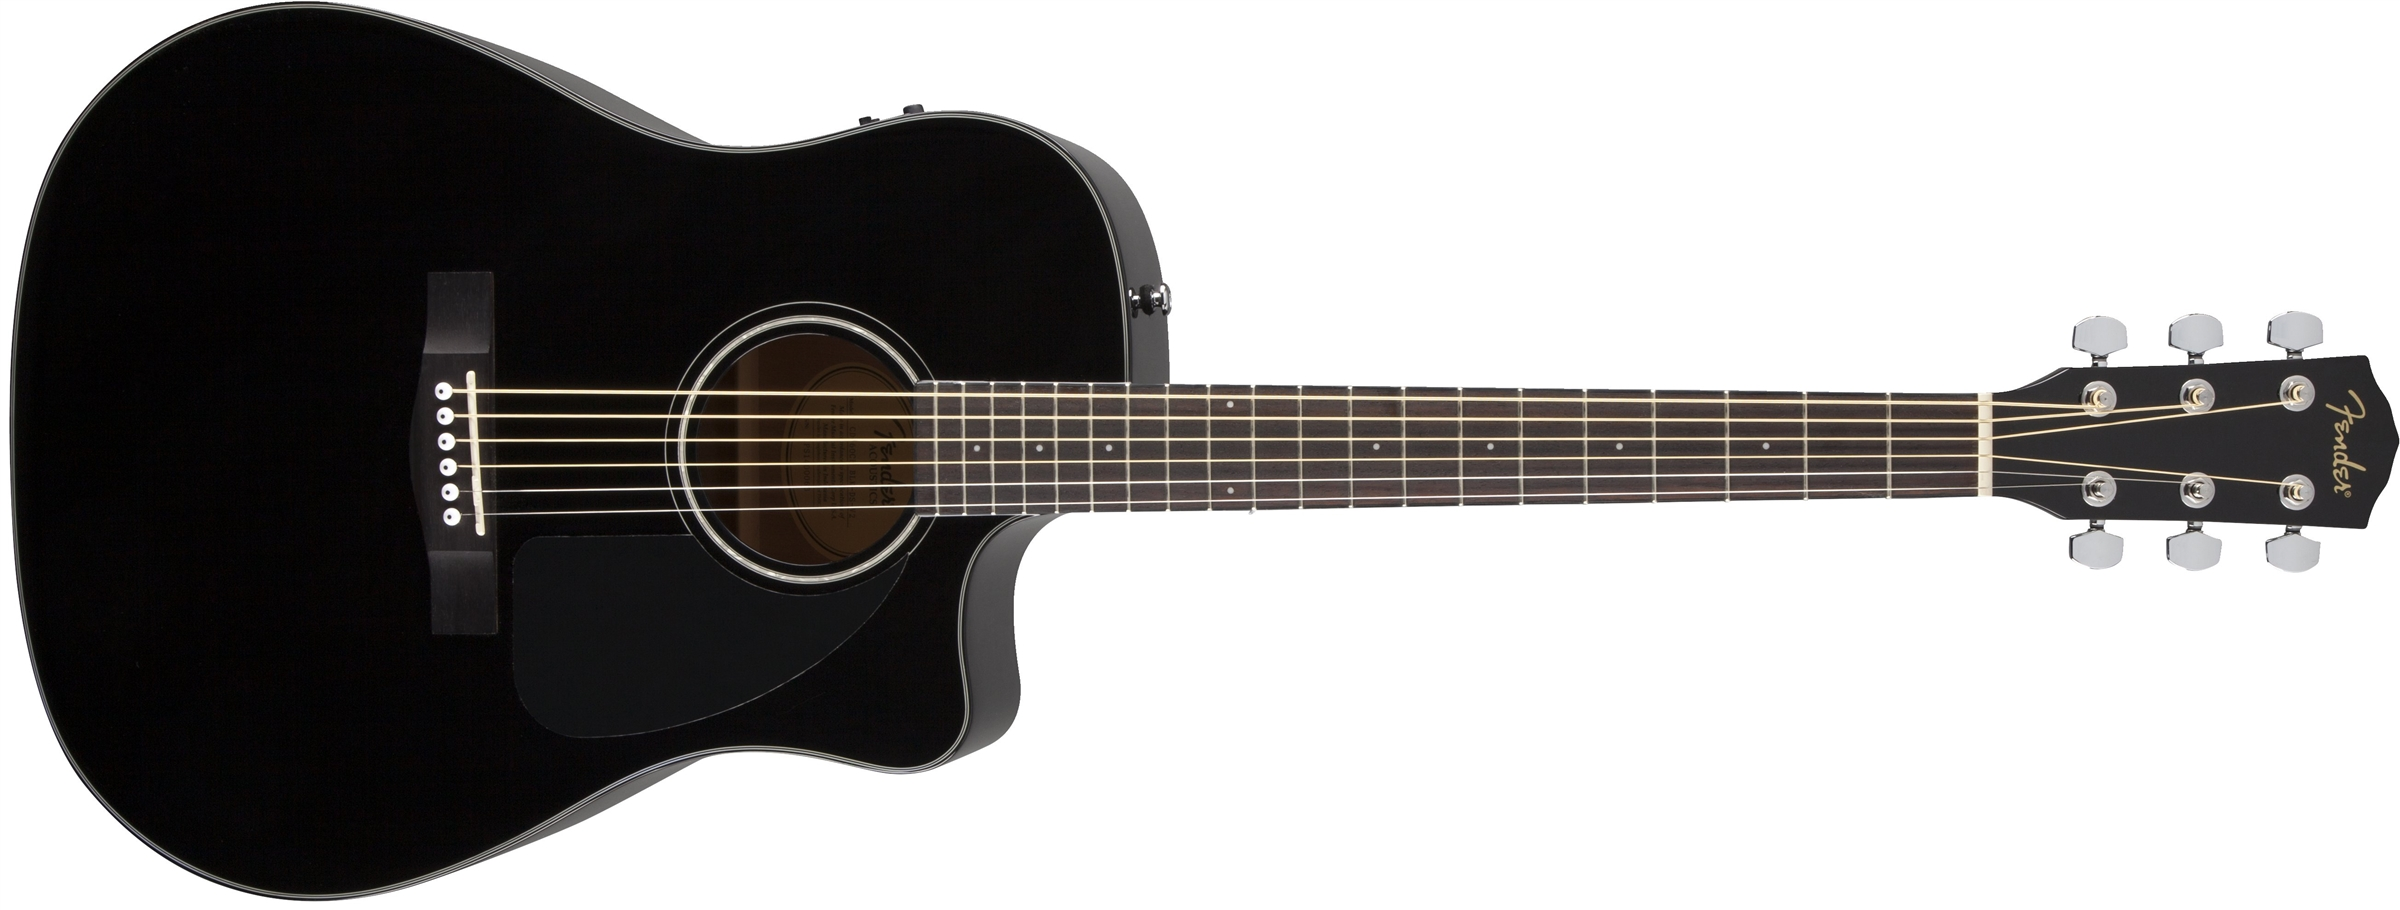 Black Fender Cd 60 Acoustic Guitar